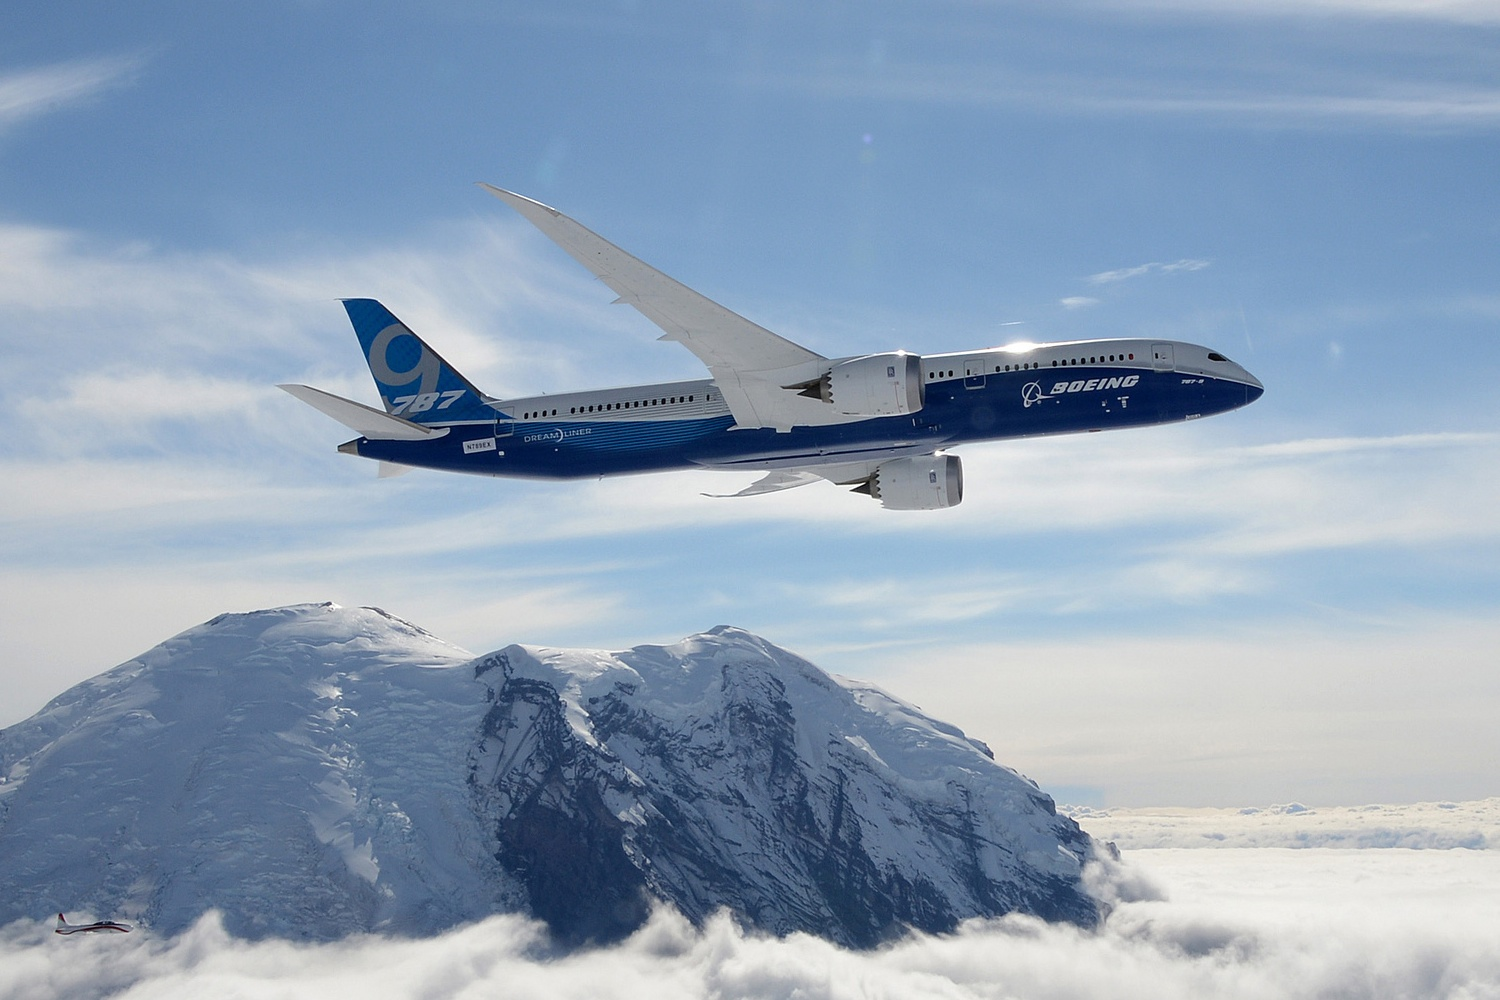 The latest generation of airliners, such asthe Boeing 787 (pictured above) and the Airbus A350, rely heavily on automation.